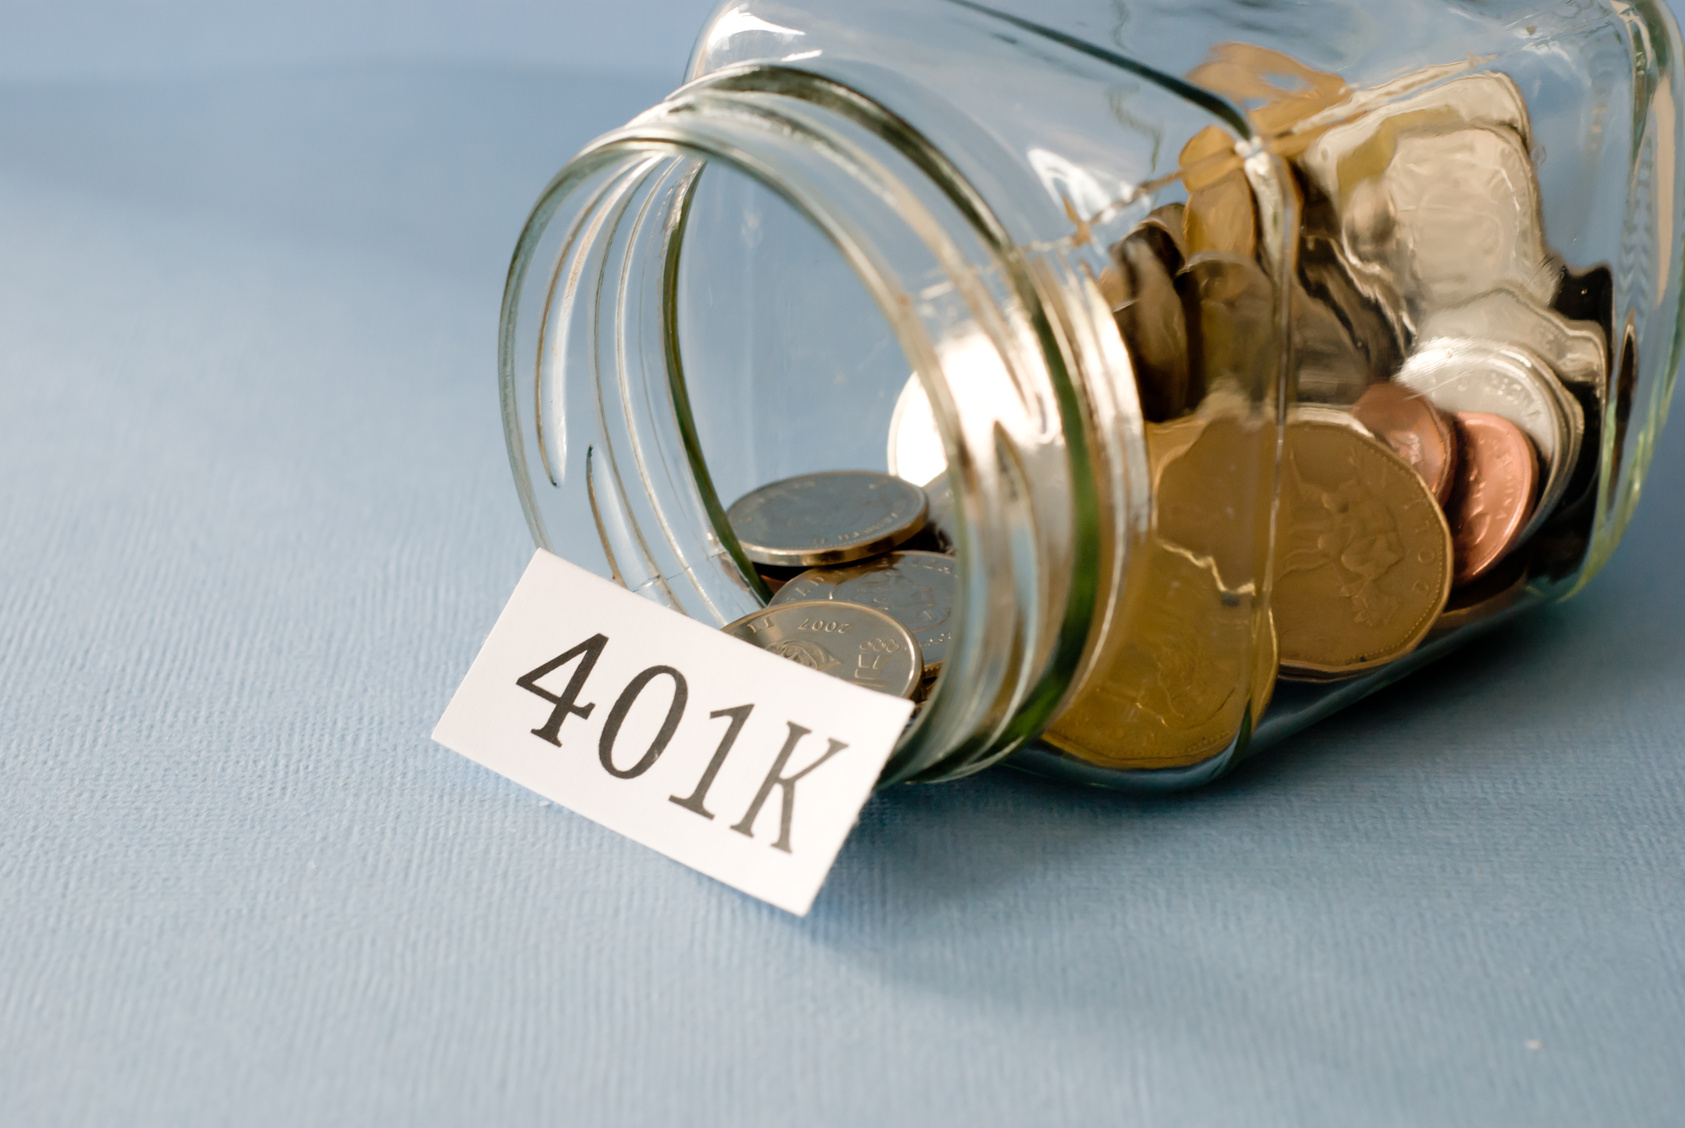 What Are Roth 401(k)s?